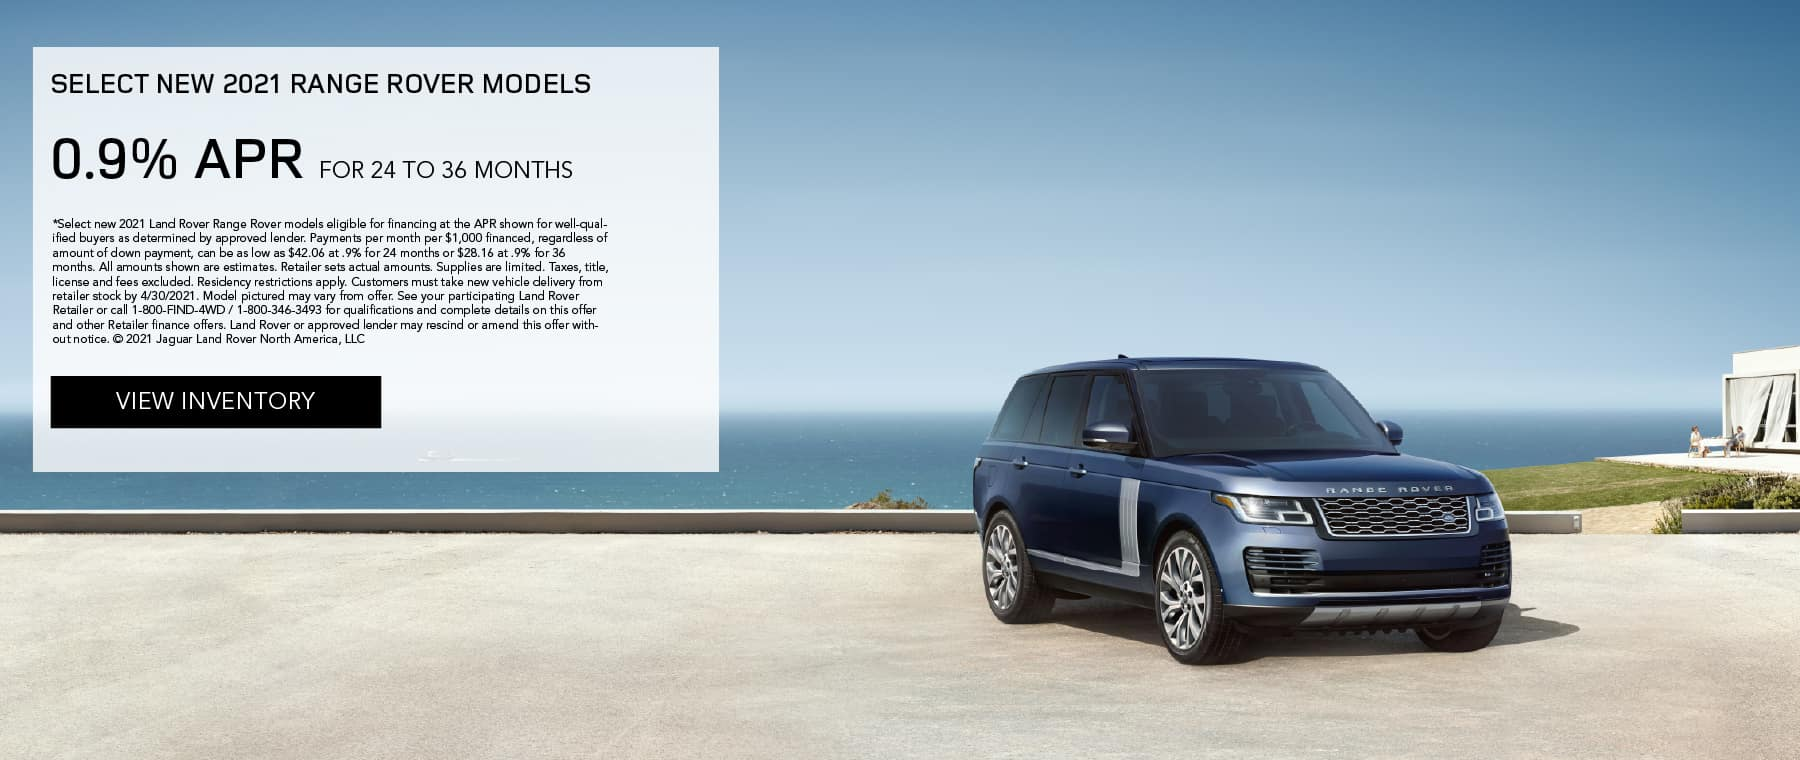 SELECT 2021 RANGE ROVER MODELS. FINANCE AT 0.9% APR FOR 24 TO 36 MONTHS. EXCLUDES TAXES, TITLE, LICENSE AND FEES. OFFER ENDS 4/30/2021. VIEW INVENTORY. BLUE RANGE ROVER PARKED NEAR BEACH.